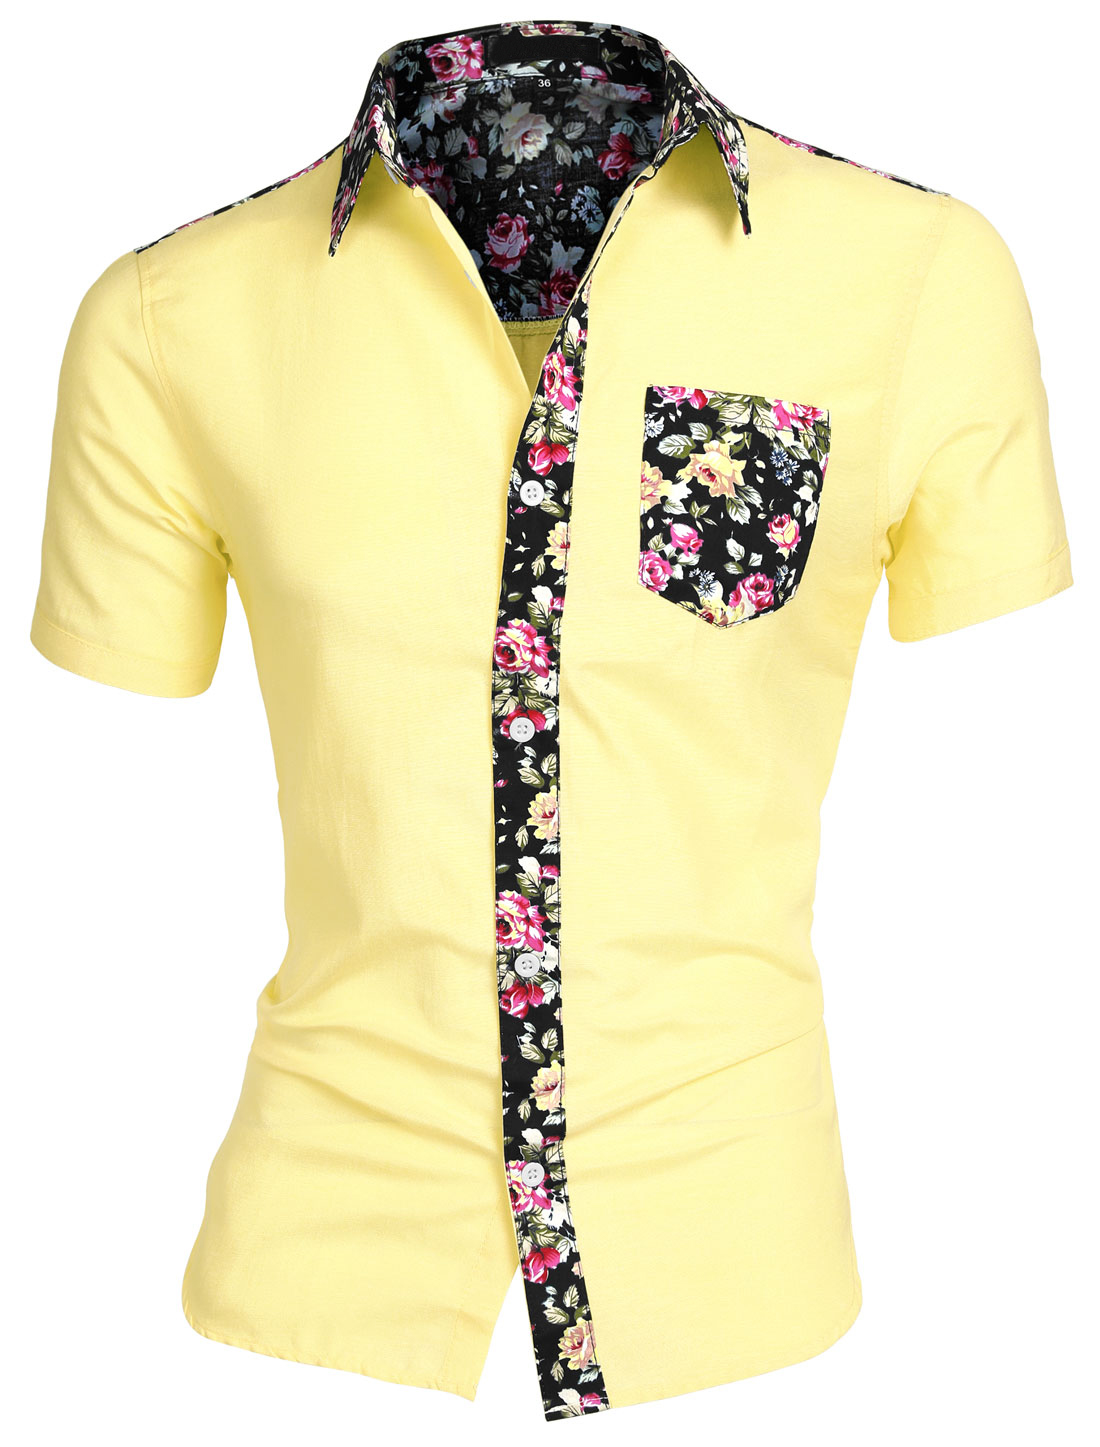 Men Floral Print Round Hem Chest Pocket Short Sleeve Button Down Shirt Light Yellow S